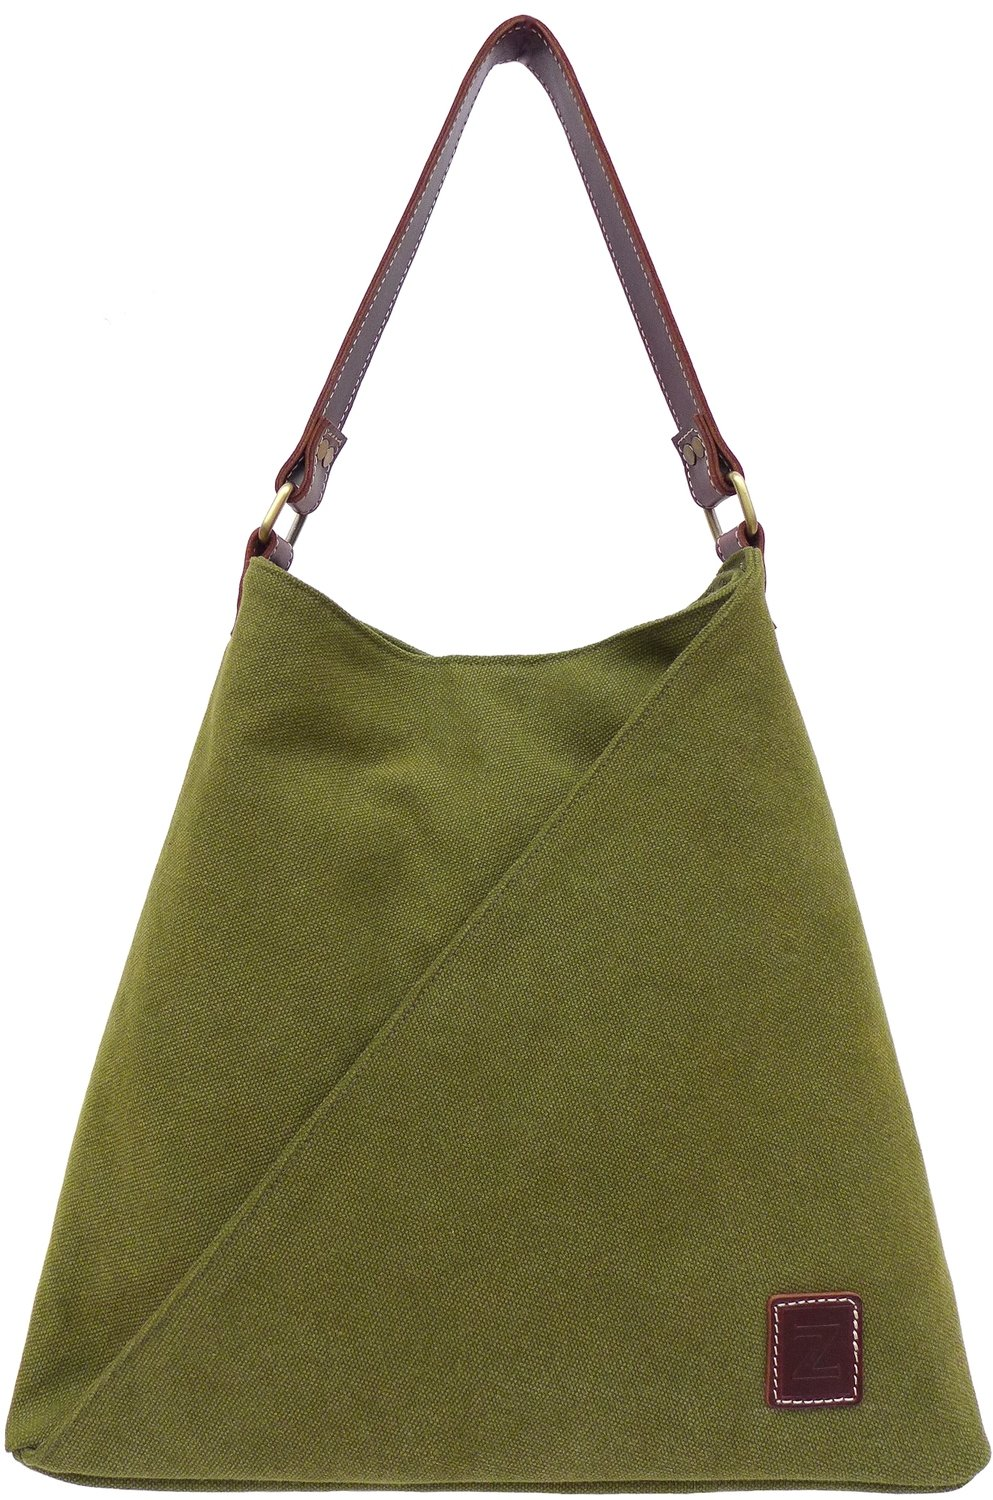 Stone-washed canvas and leather tote bag (olive)